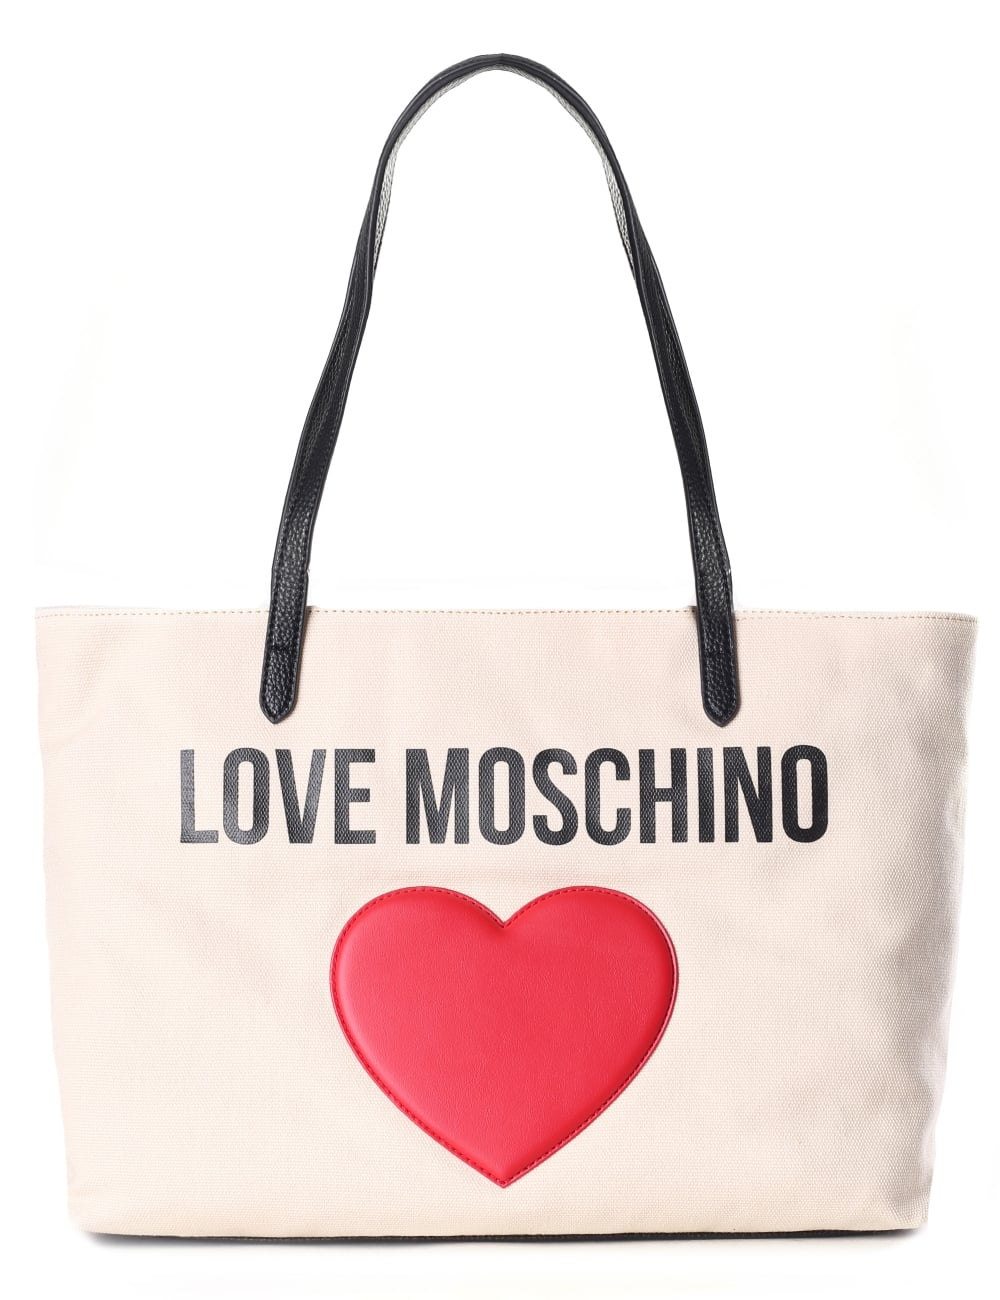 ee4c4c11fa4 Love Moschino Women s Canvas Logo Heart Tote